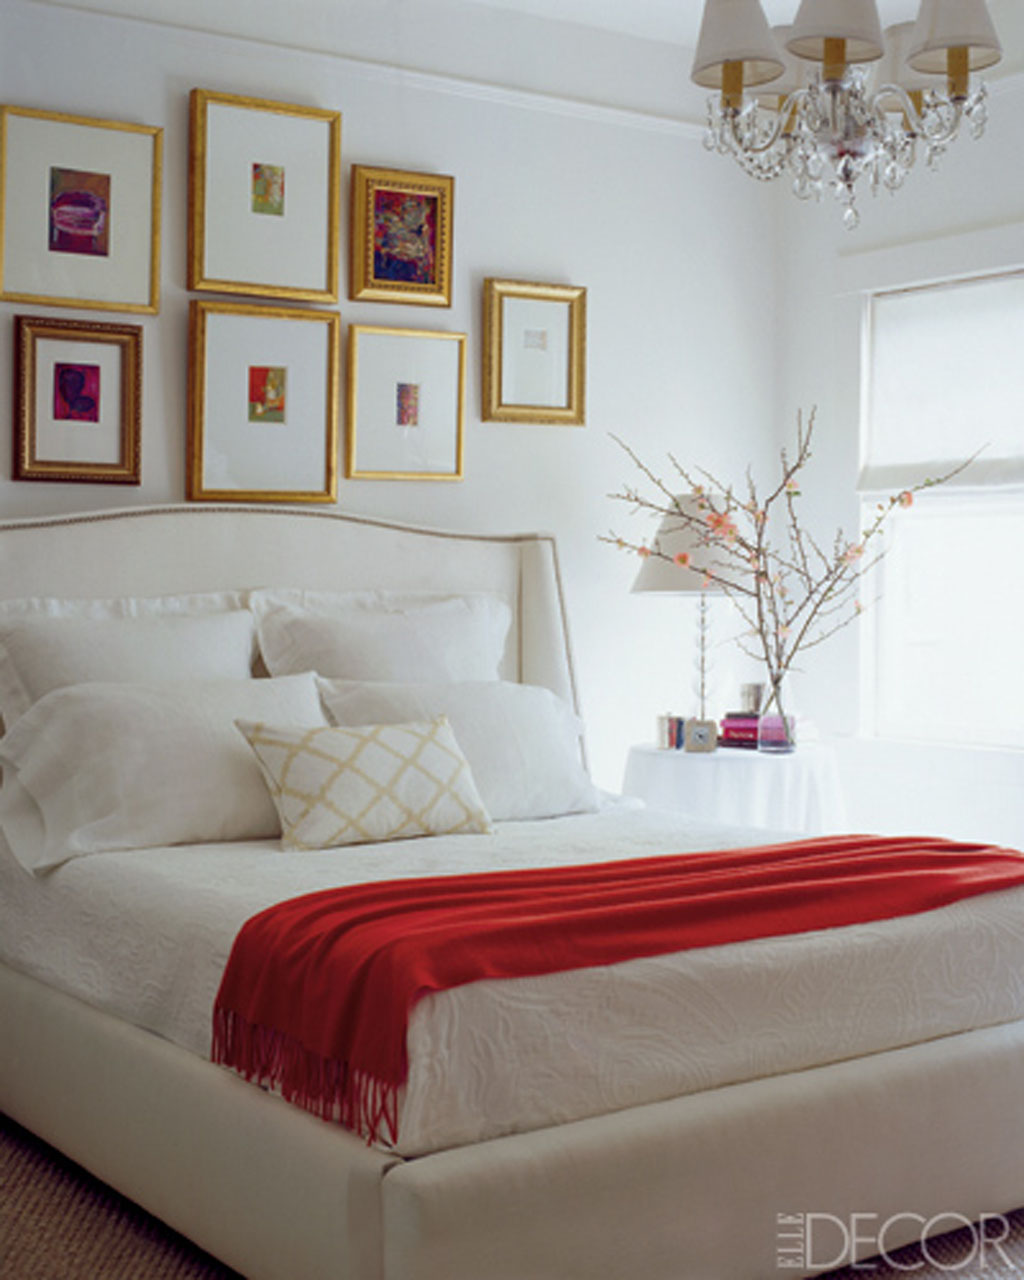 41 white bedroom interior design ideas pictures for How to decorate a red bedroom